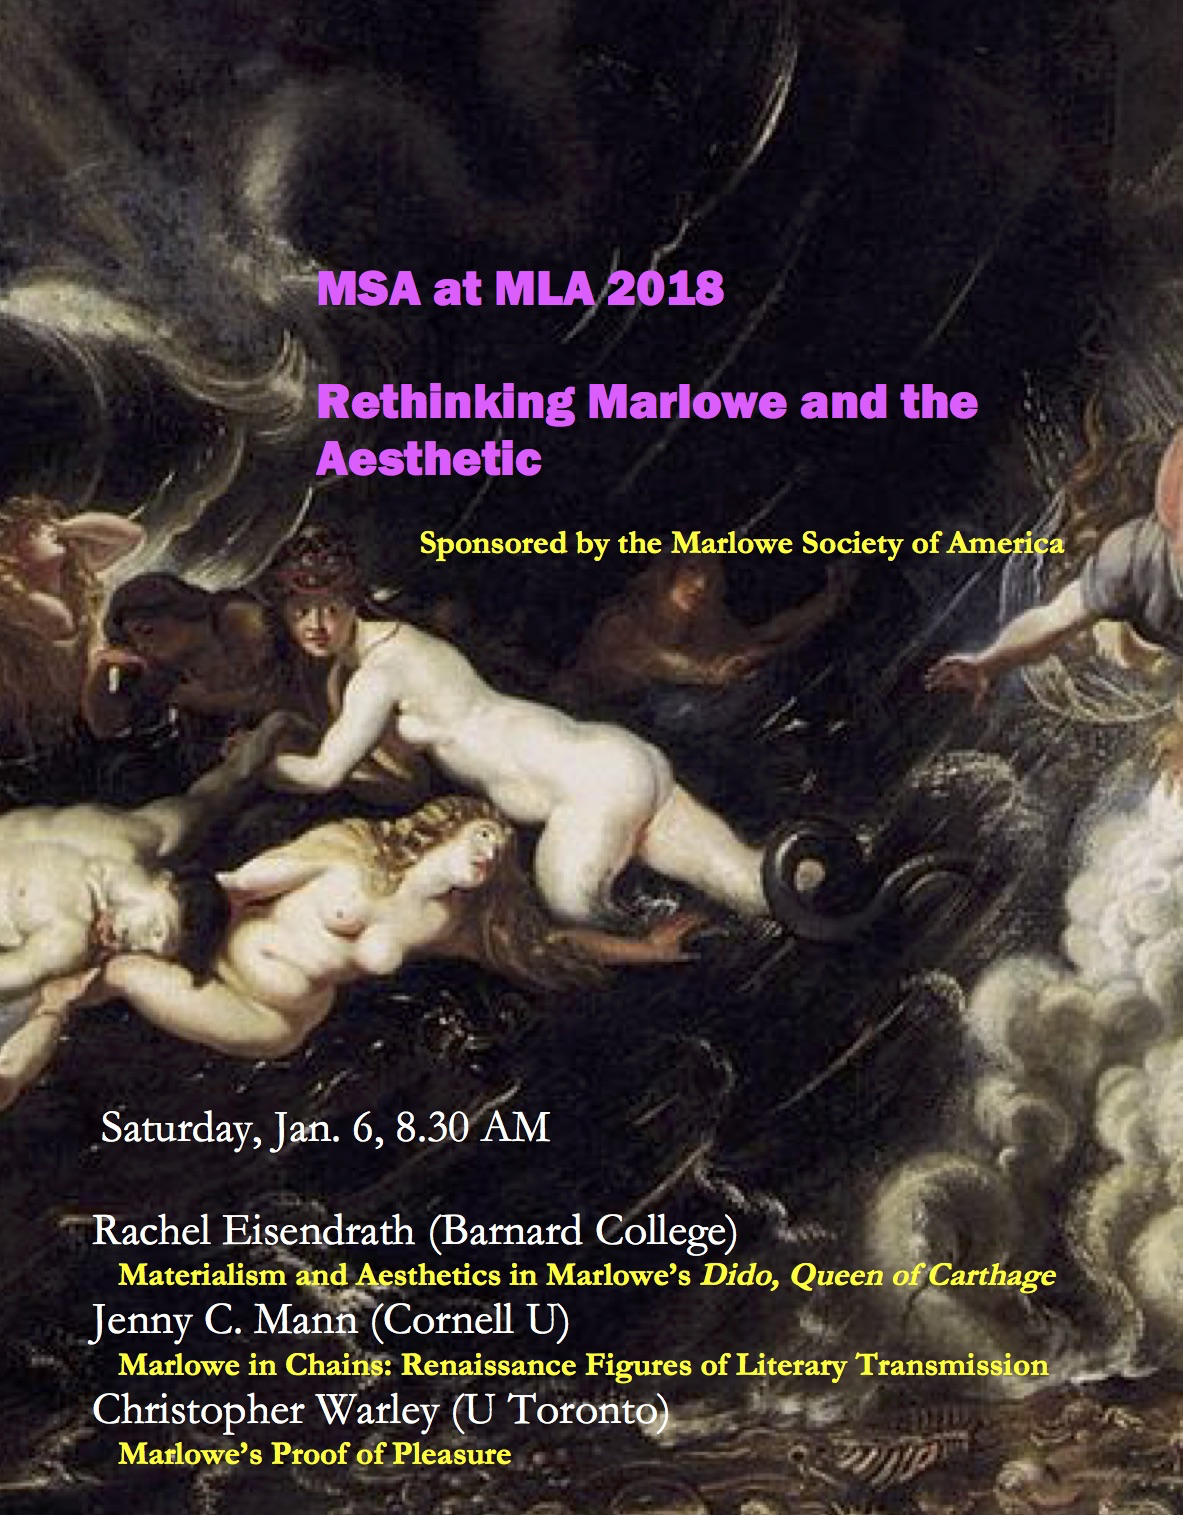 "The MSA is sponsoring a panel at the Modern Language Association of America's 2018 conference in New York City. It will be held on Saturday, January 6, during the 8:30 session. Titled ""Rethinking Marlowe and the Aesthetic,"" it will feature presentations by Rachel Eisendrath (Barnard College), Jenny C. Mann (Cornell U), and Christopher Warley (U Toronto)."